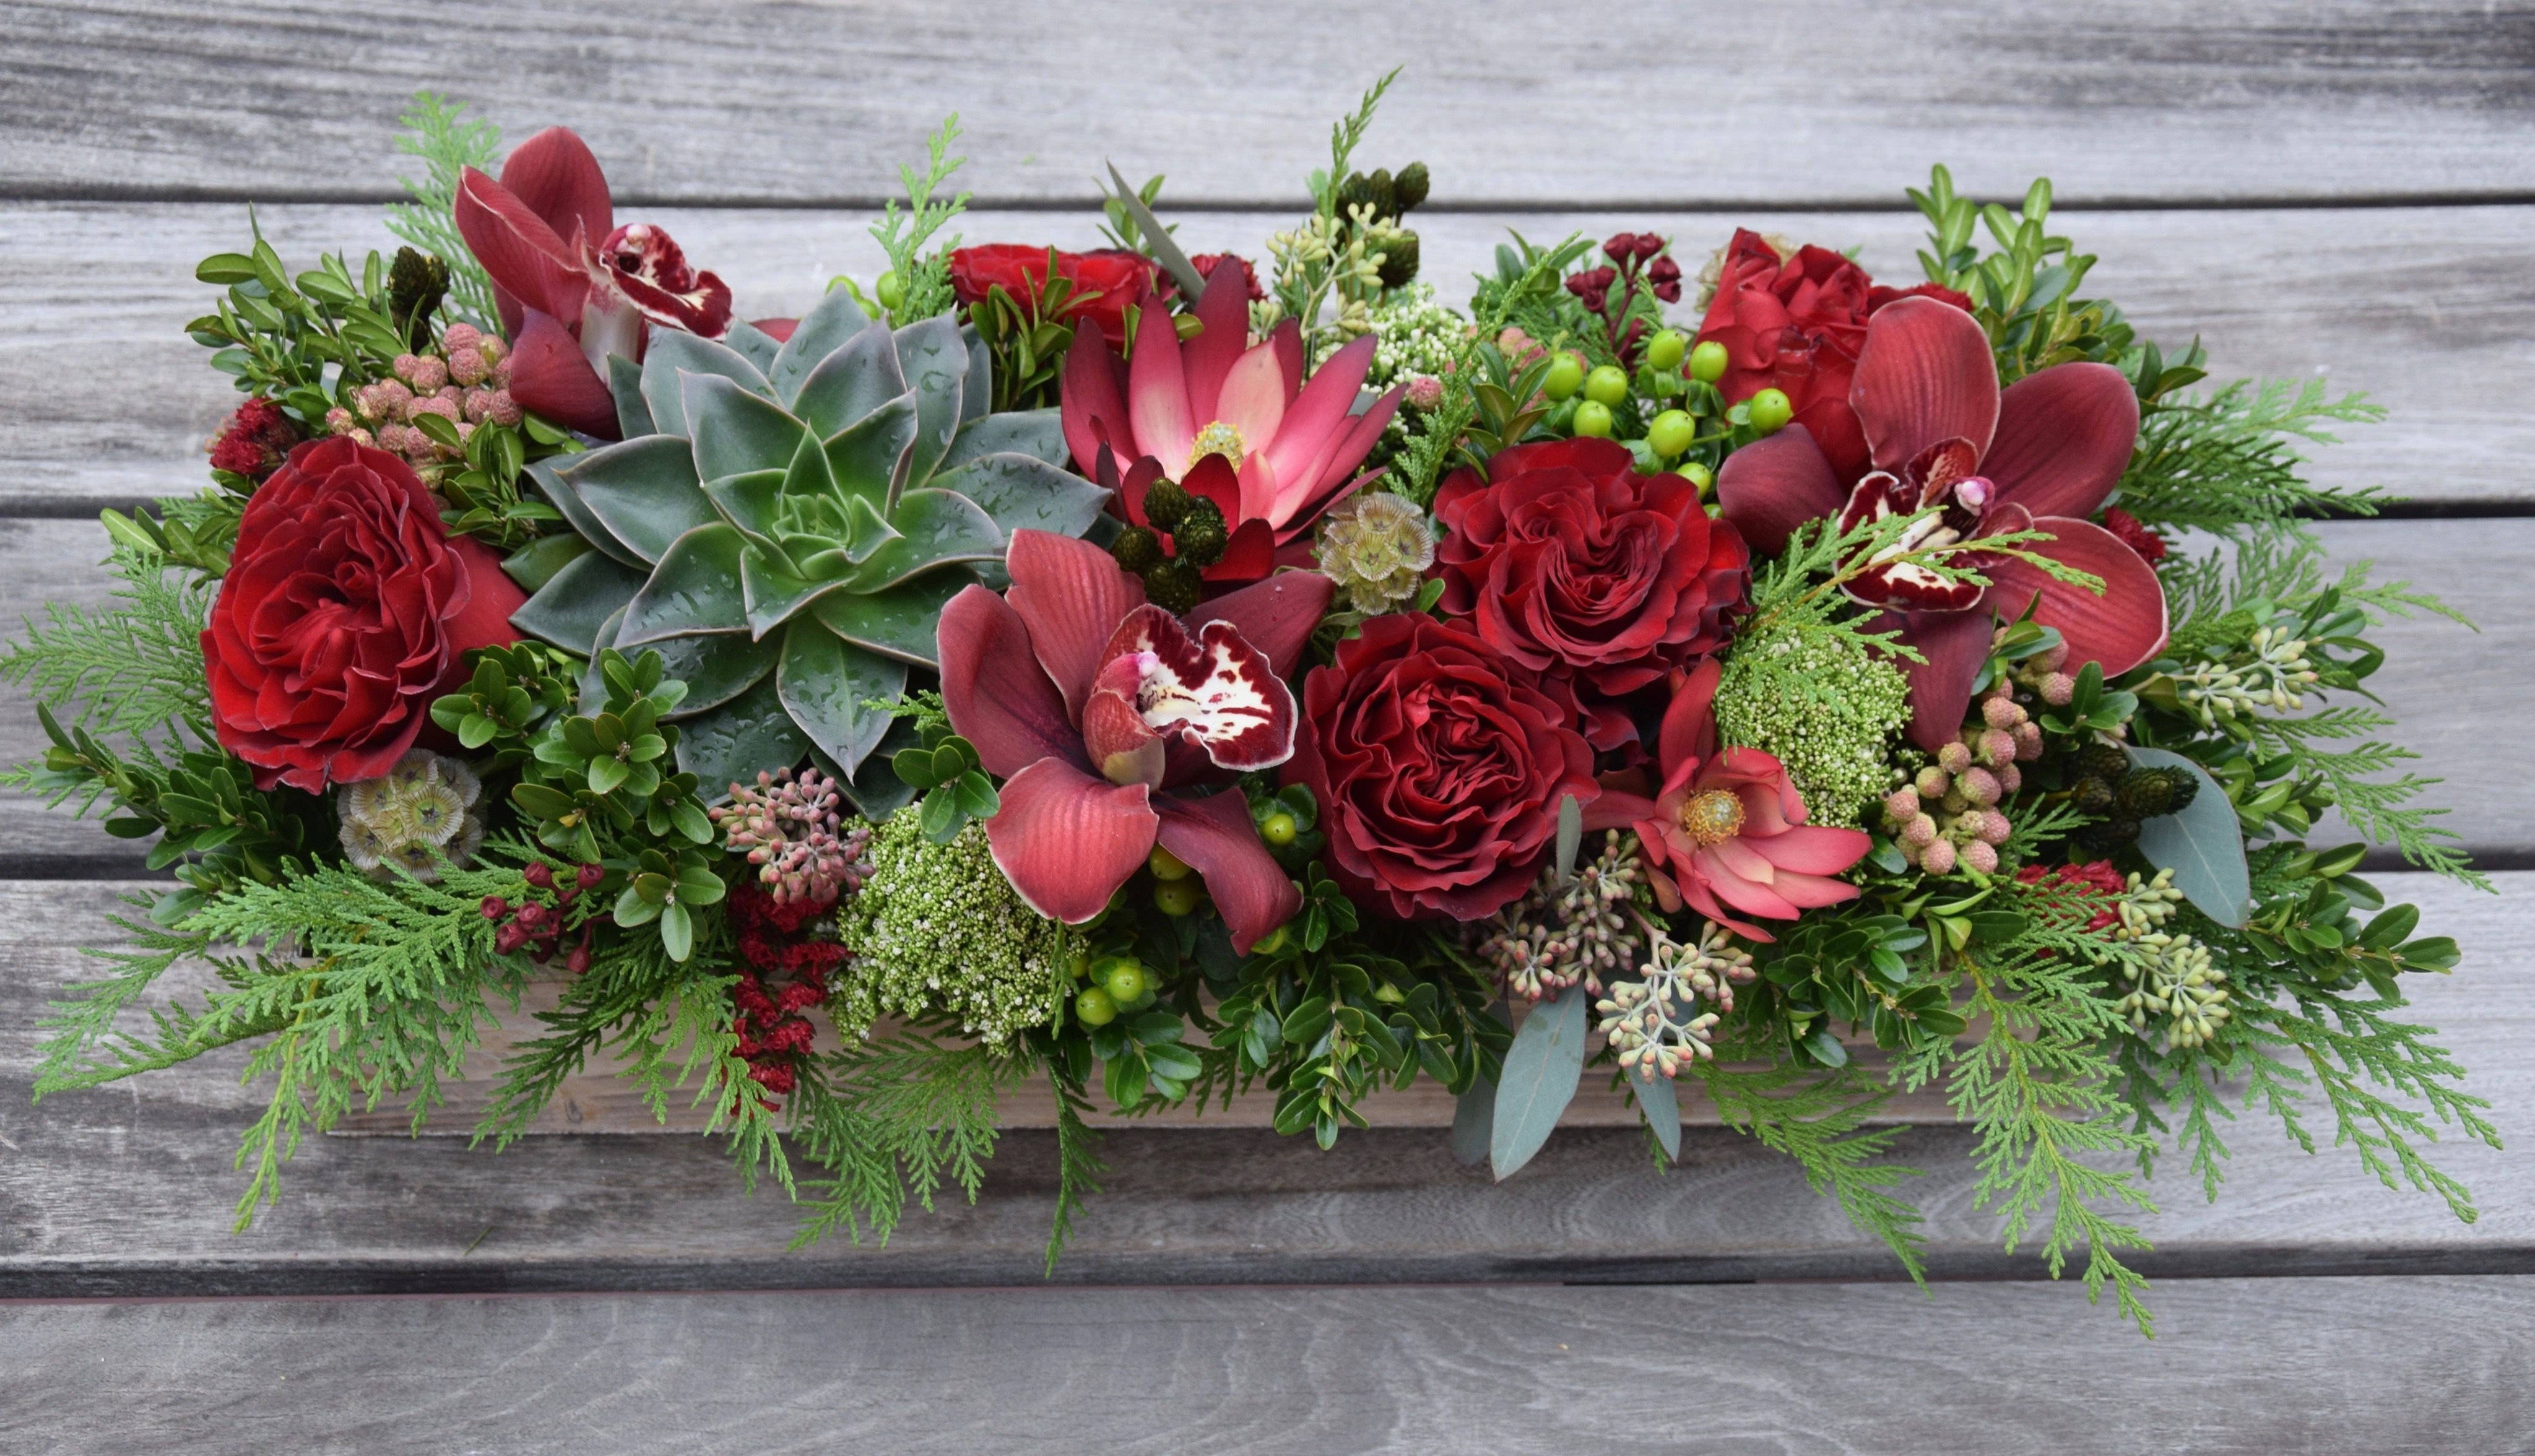 Long And Low Table Centerpiece For Christmas Handcrafted By Fleurelity Christmas Floral Fresh Flowers Arrangements Christmas Table Centerpieces